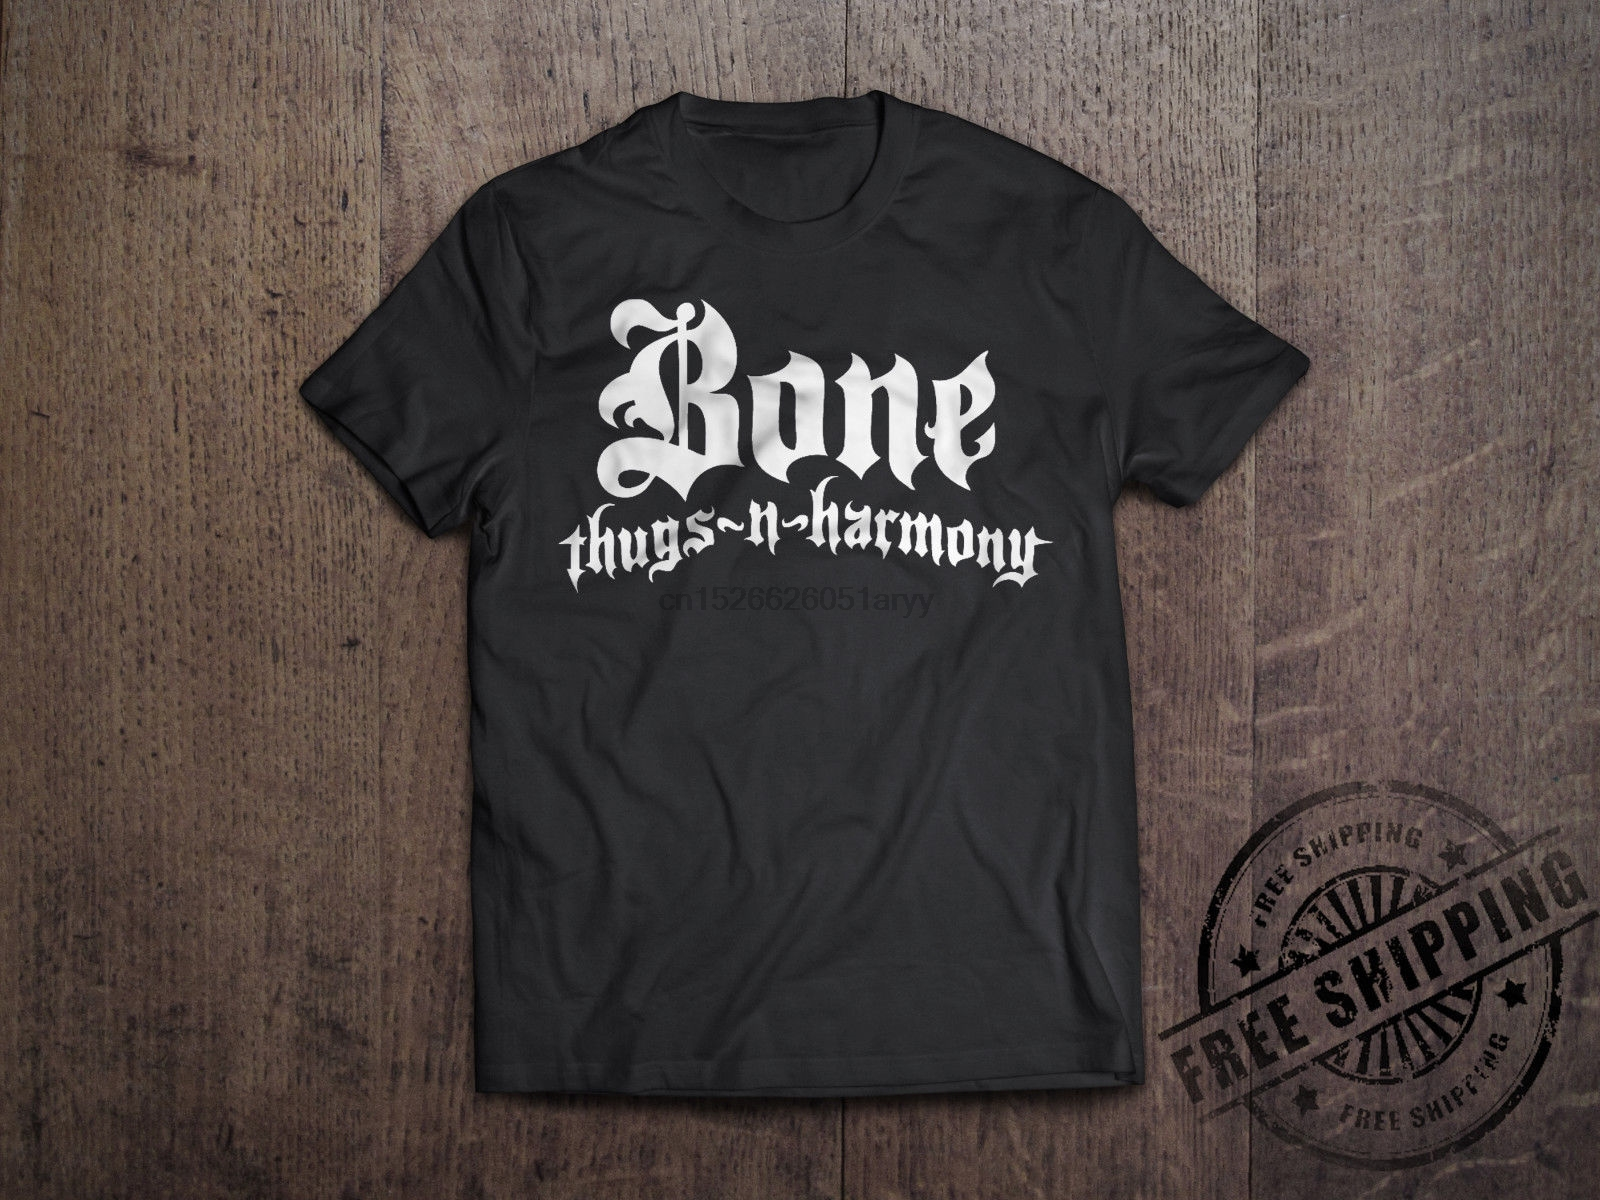 Bone Thugs N Harmony Logo T Shirt Vintage Hip Hop Rap Group Tee